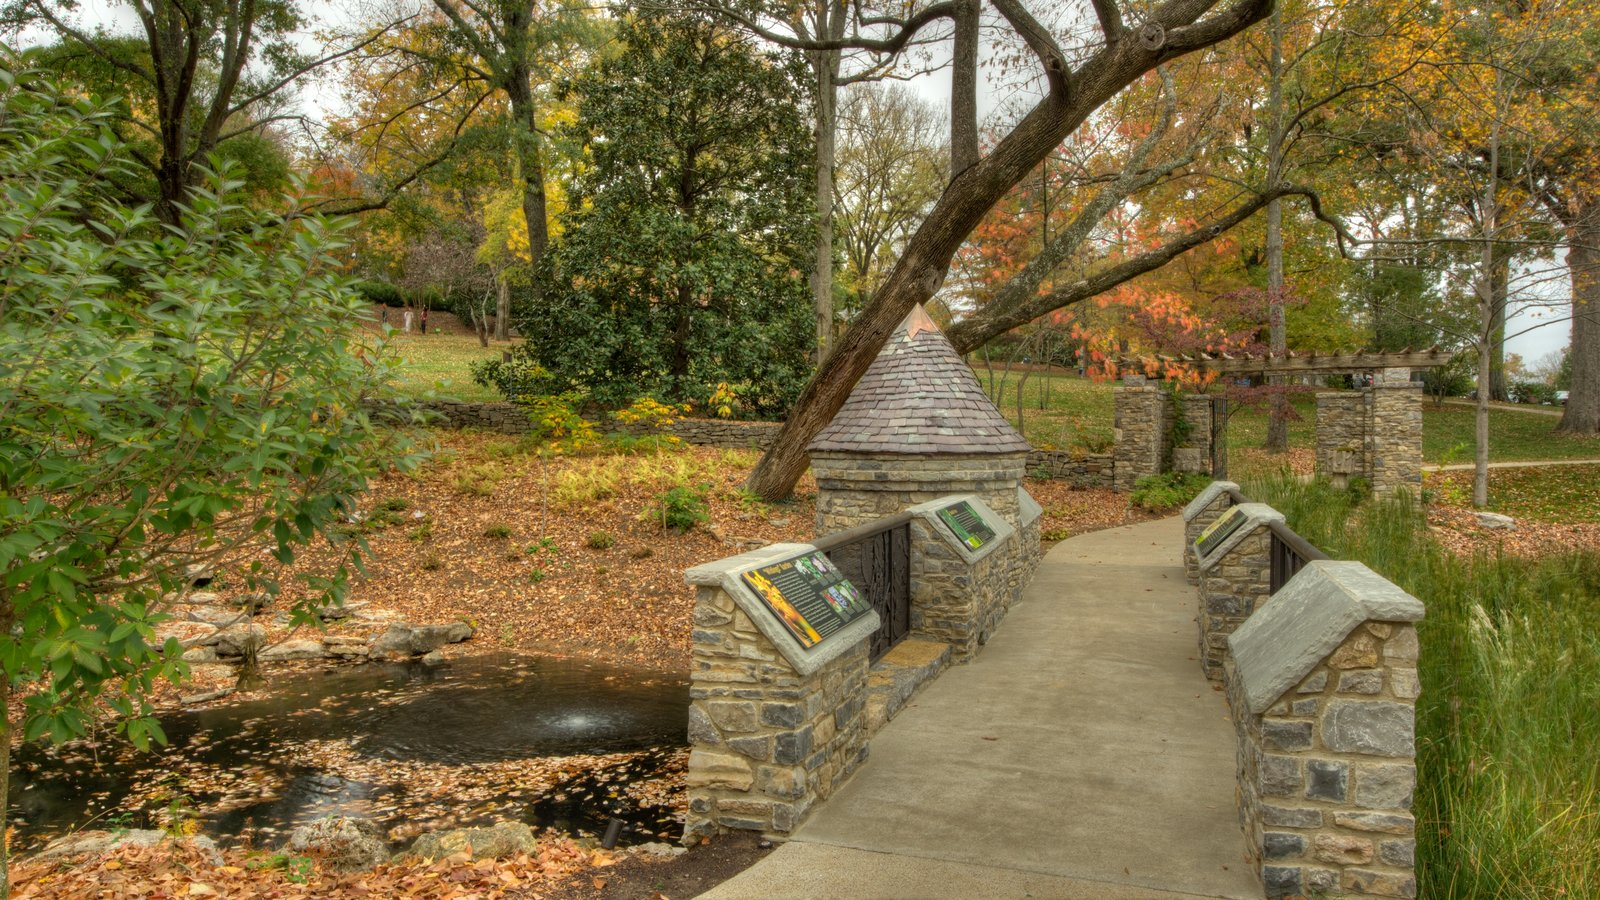 Cheekwood Botanical Gardens and Museum of Art featuring a park and fall colors